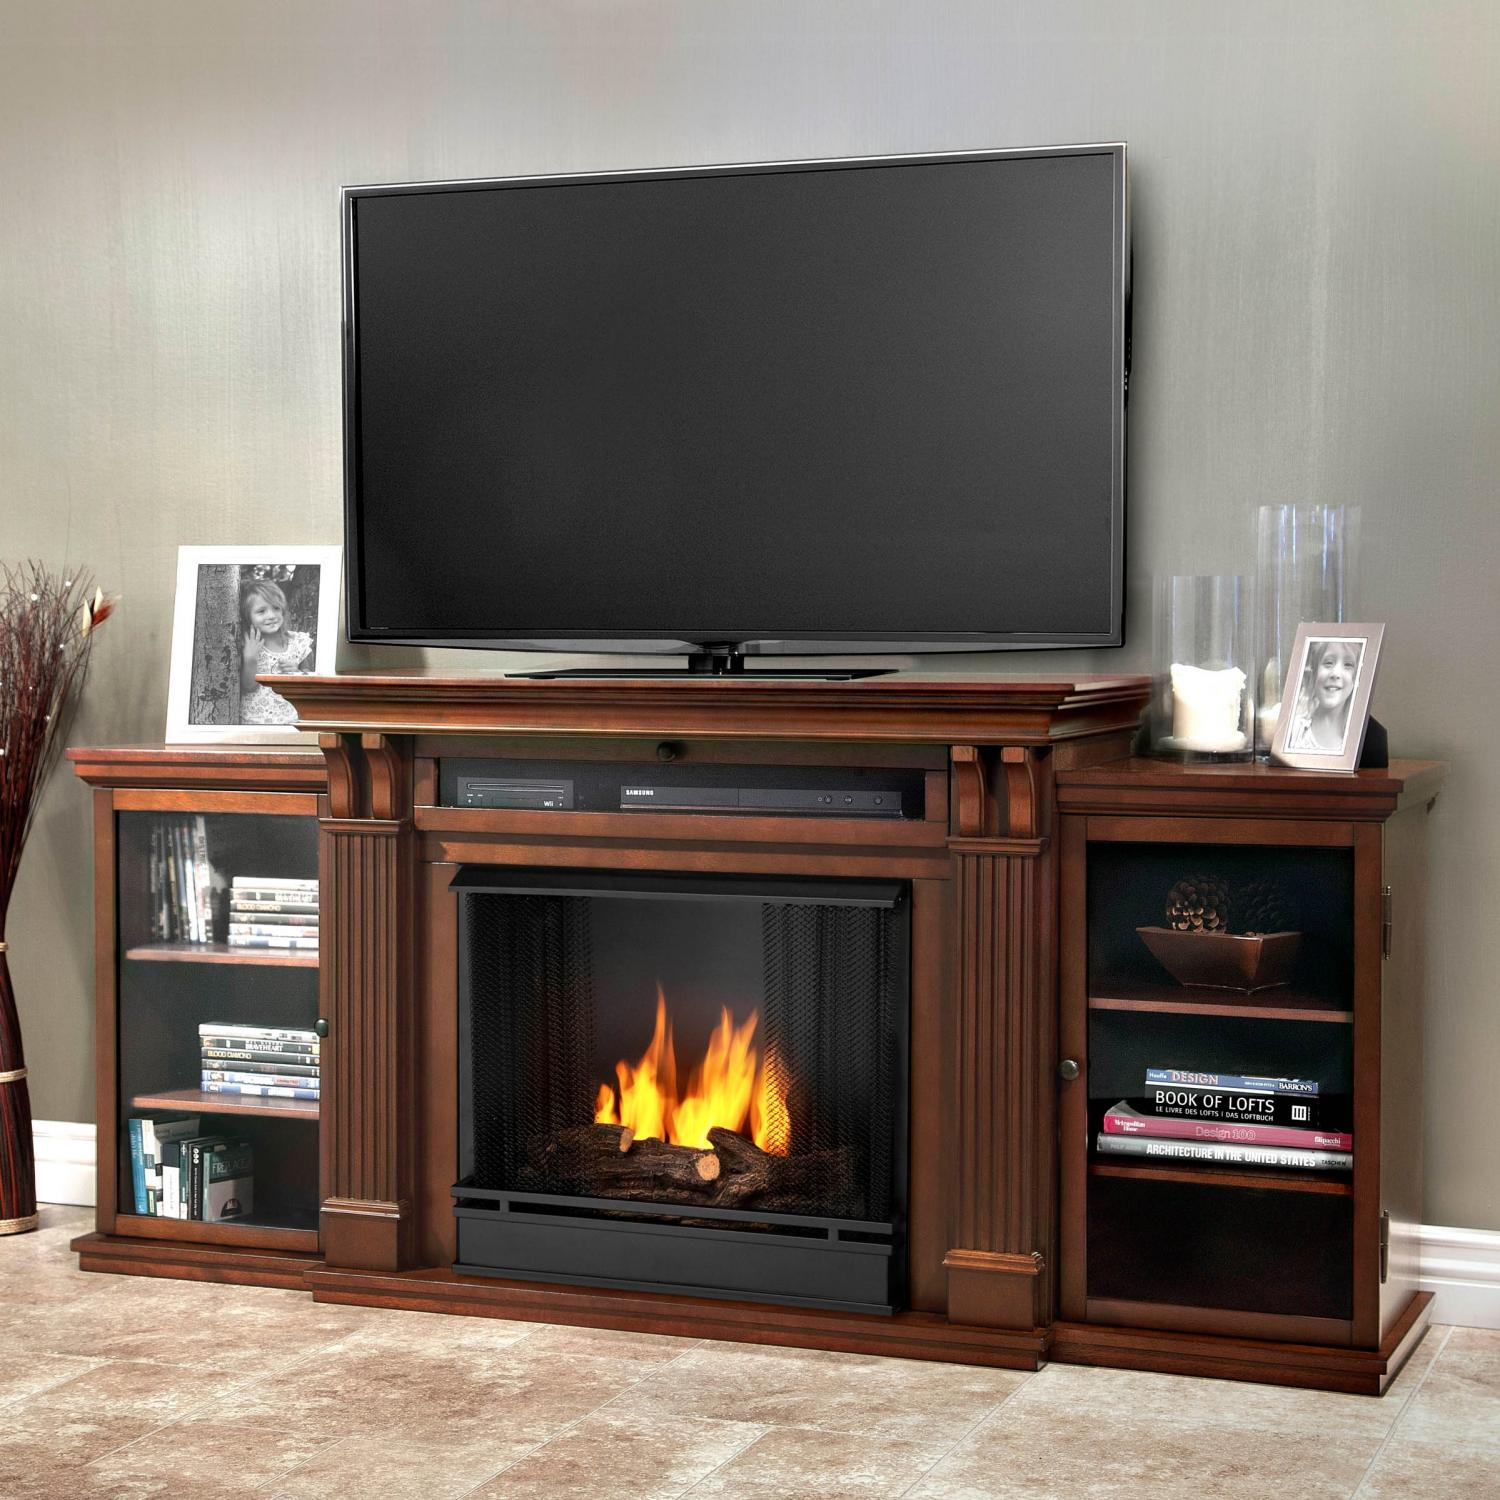 Picture of Real Flame Ashley 67-Inch Gel Fireplace Media Console - Dark Espresso